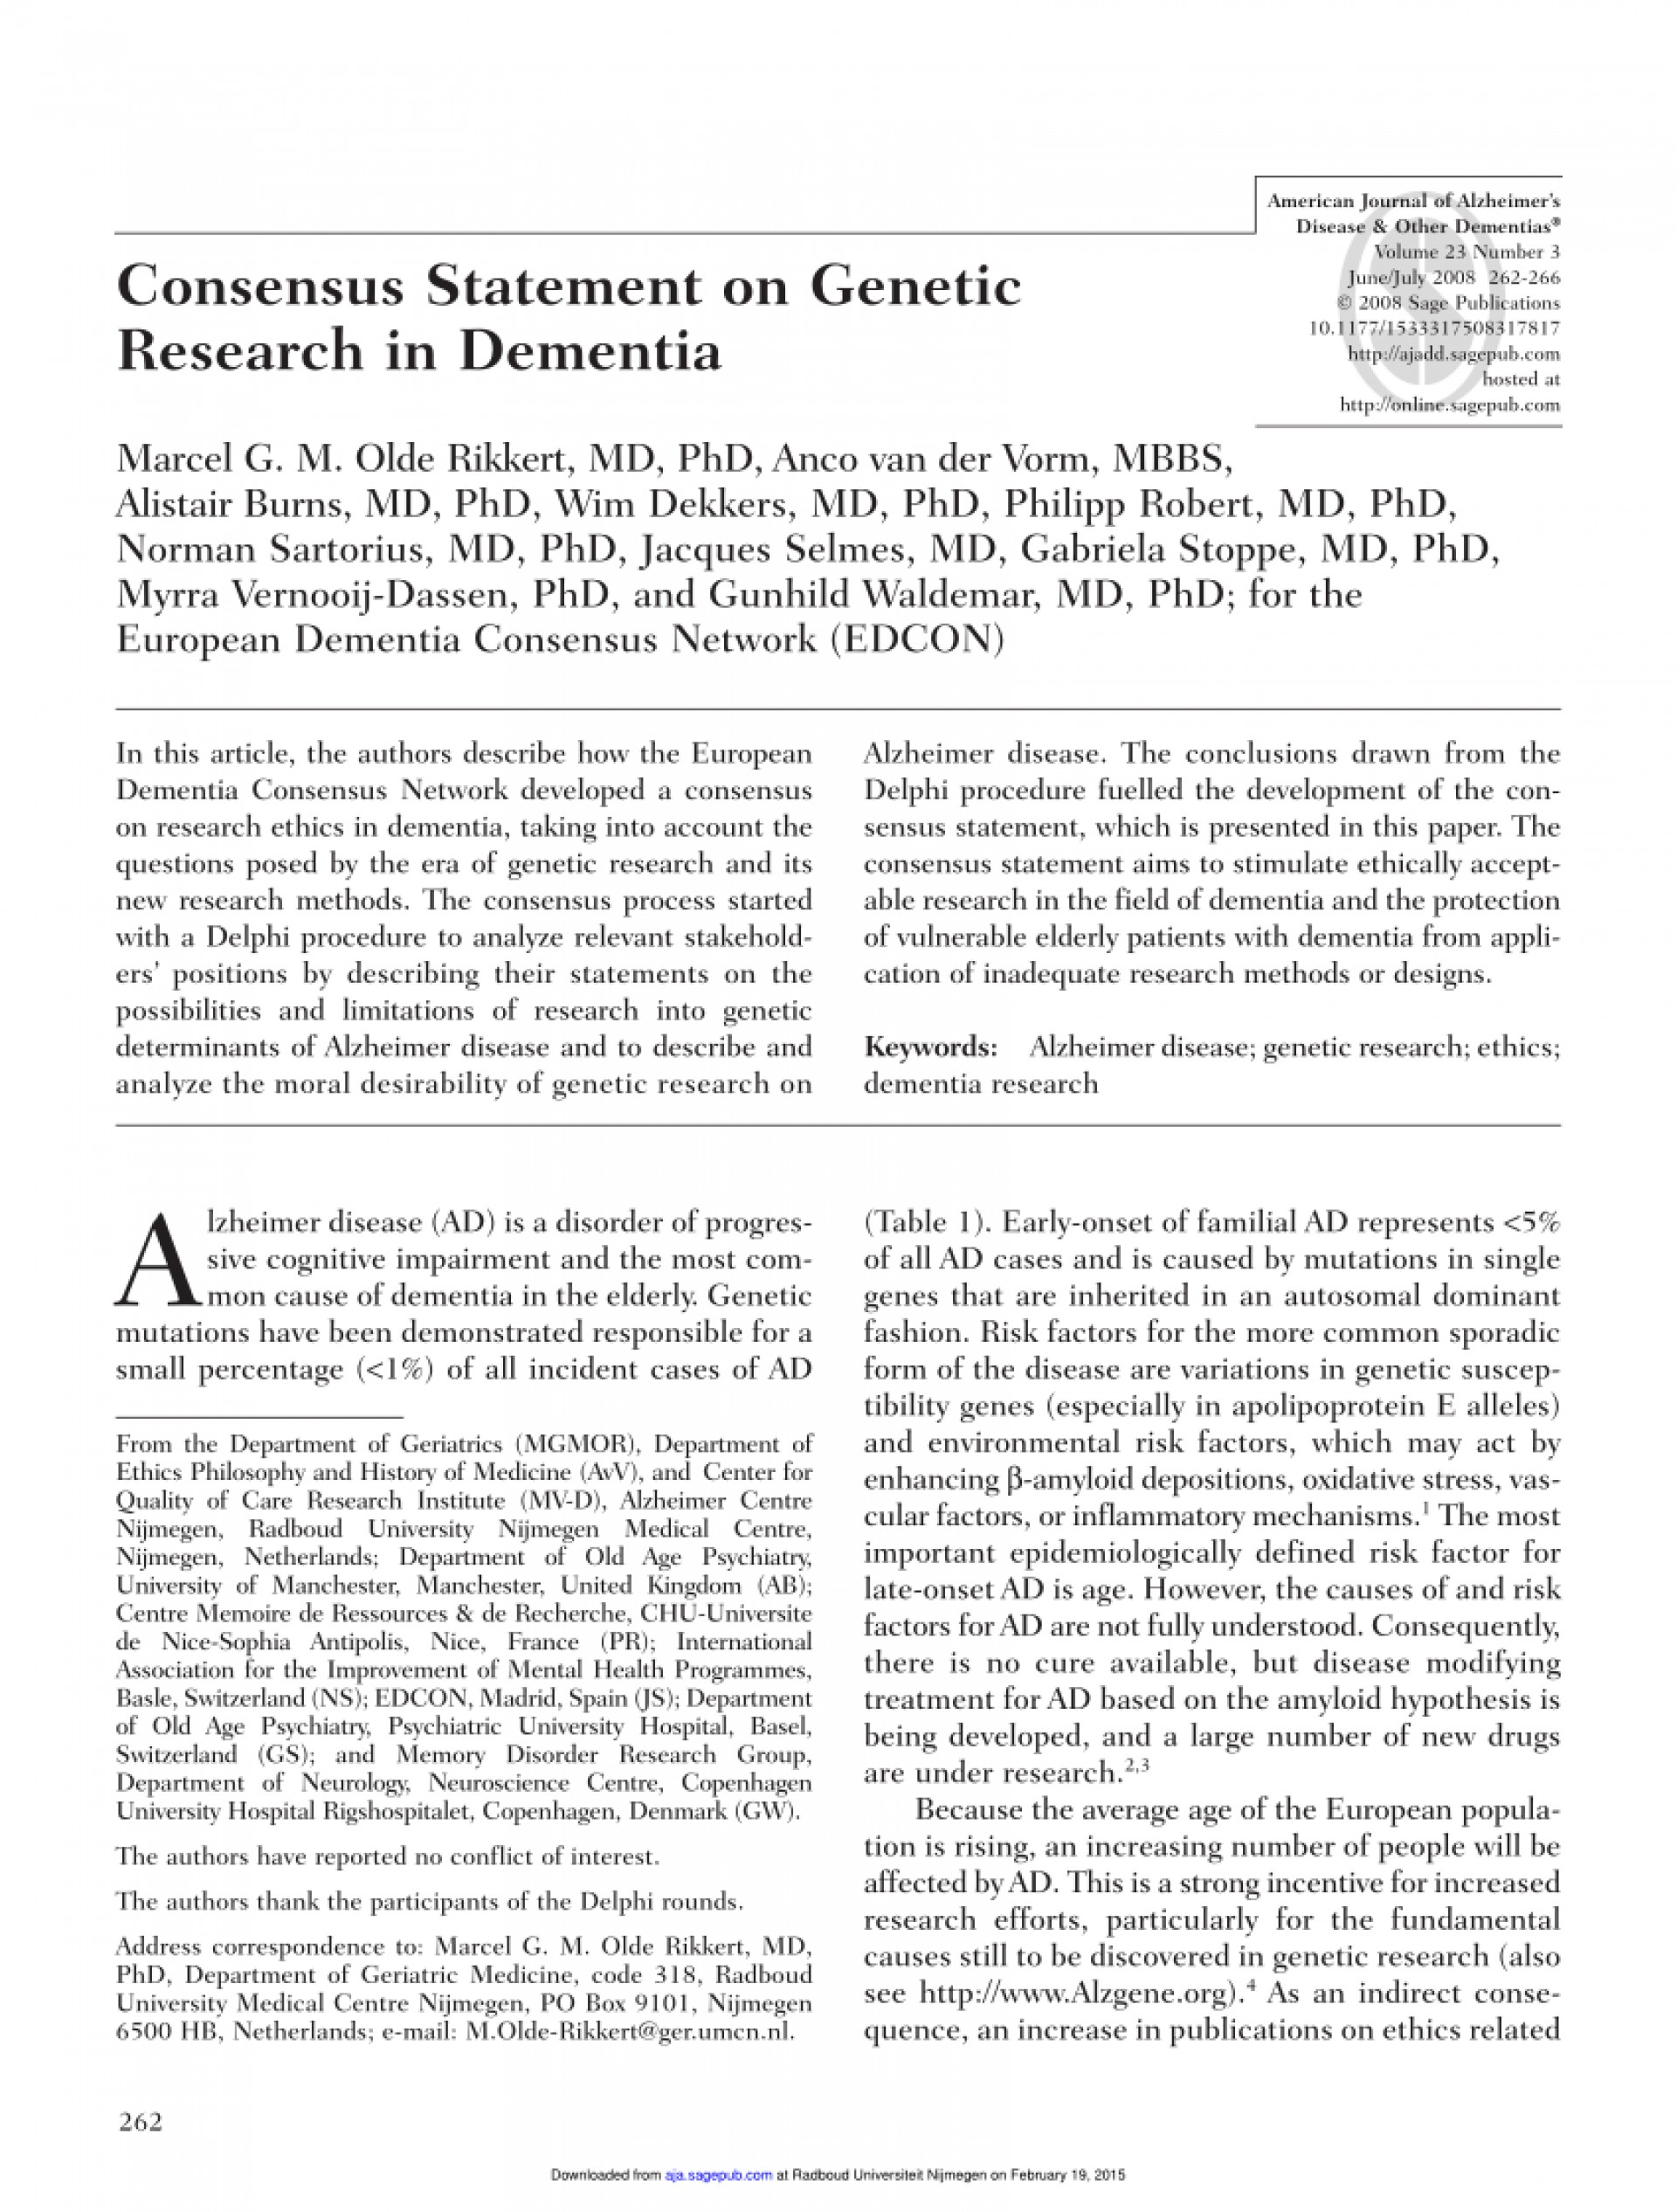 007 Largepreview Alzheimers Disease Research Paper Incredible Conclusion Alzheimer's 1920